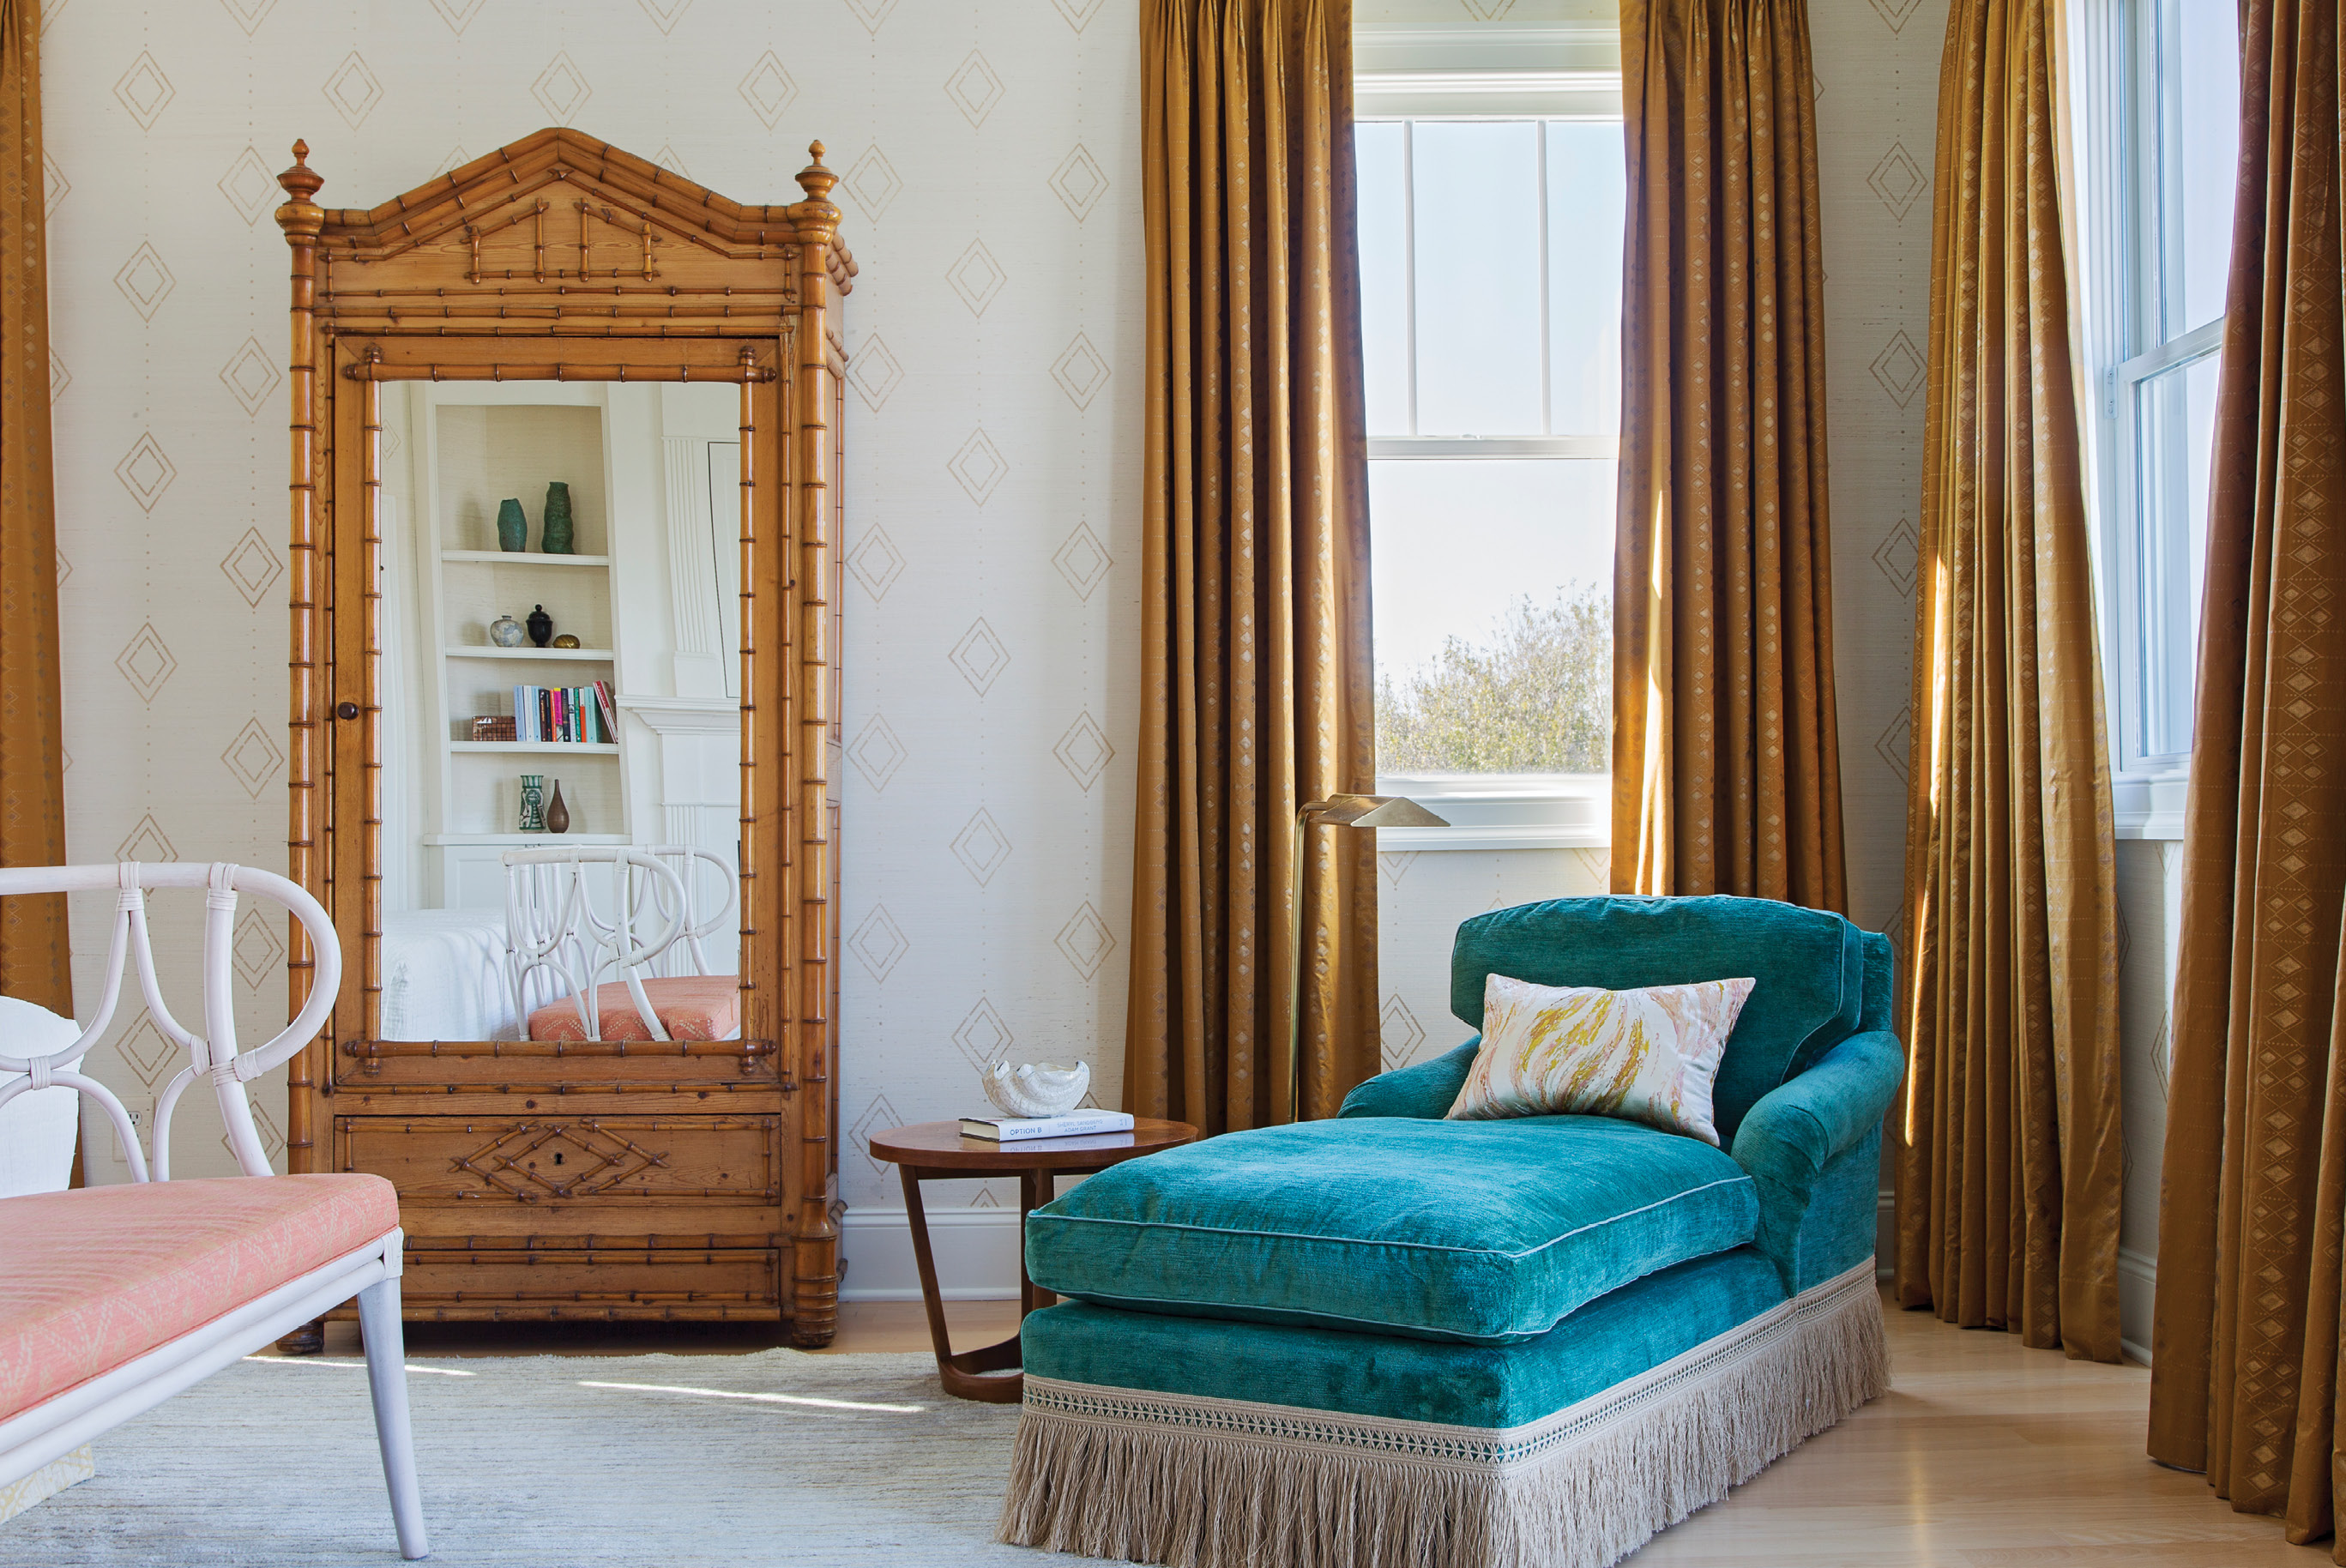 A faux bamboo wardrobe from Fritz Porter, custom drapes in a Muriel Brandolini fabric from Holland & Sherry, and vintage chaise in Pierre Frey velvet add a touch of Hollywood flair and elegant romance.